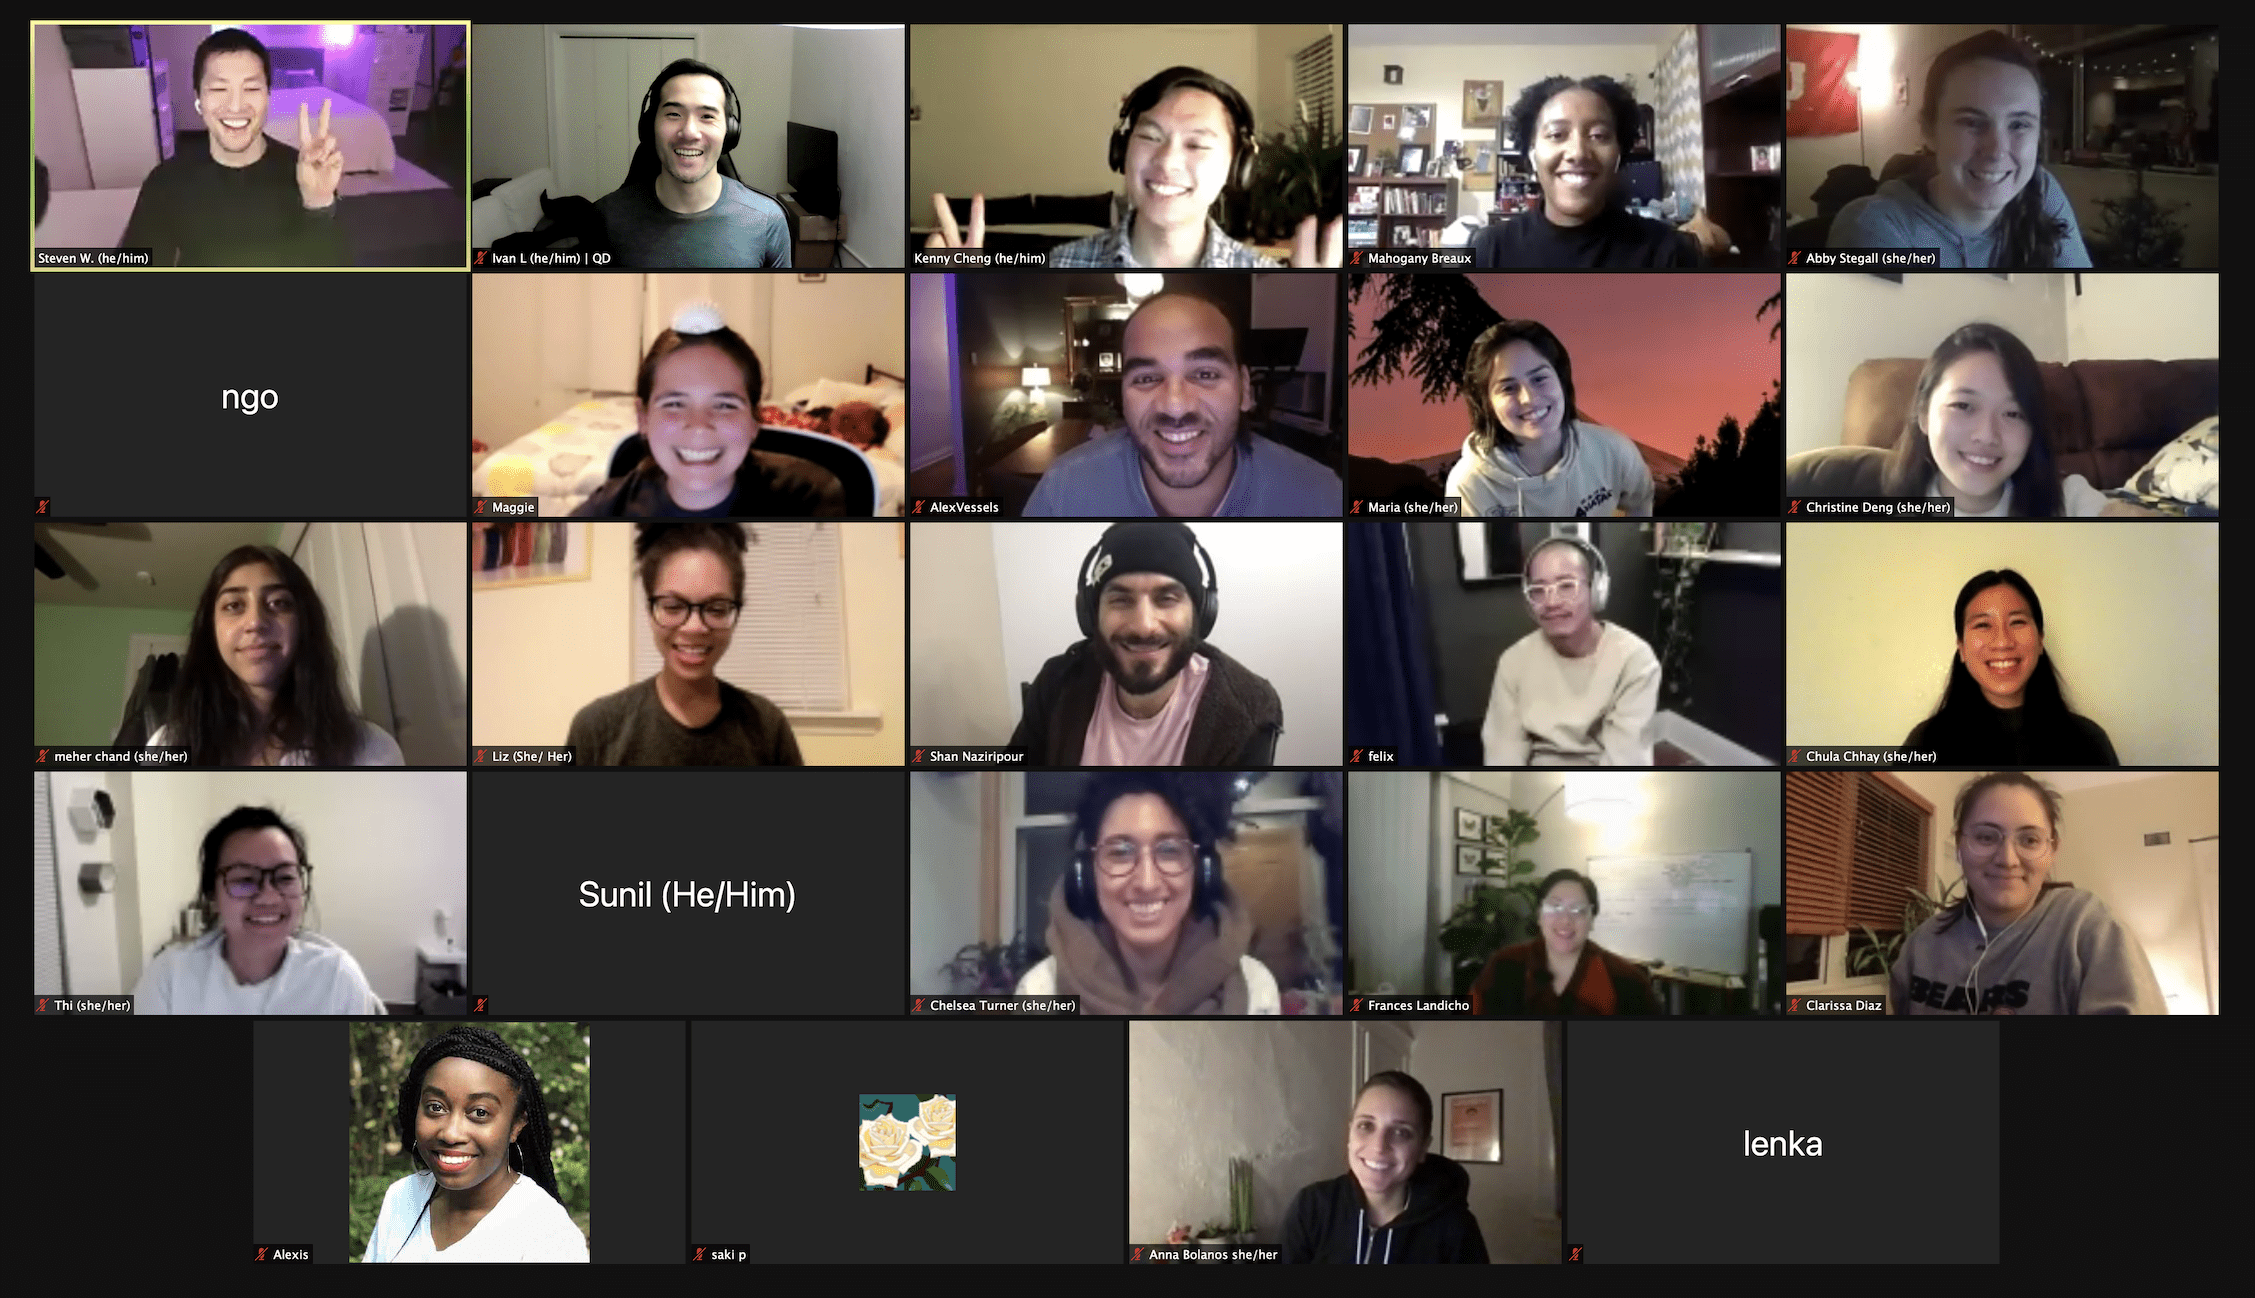 Grid of 24 people in a video call.